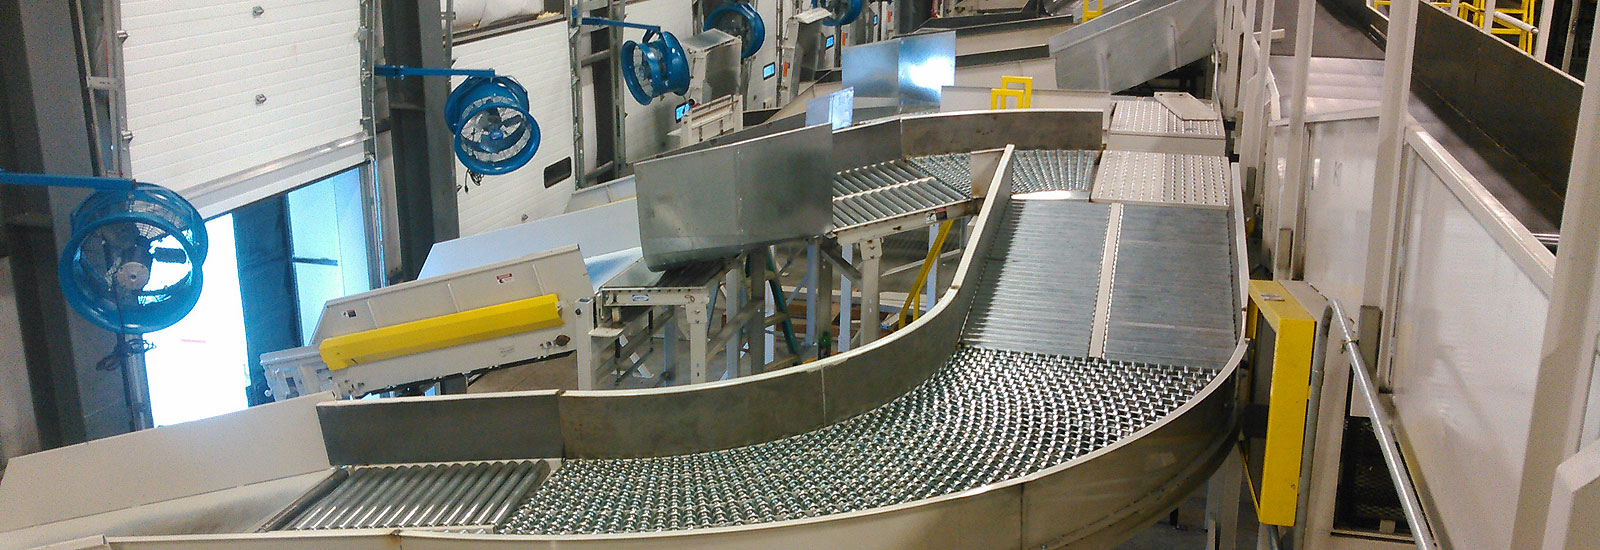 rollers-conveyor-belts